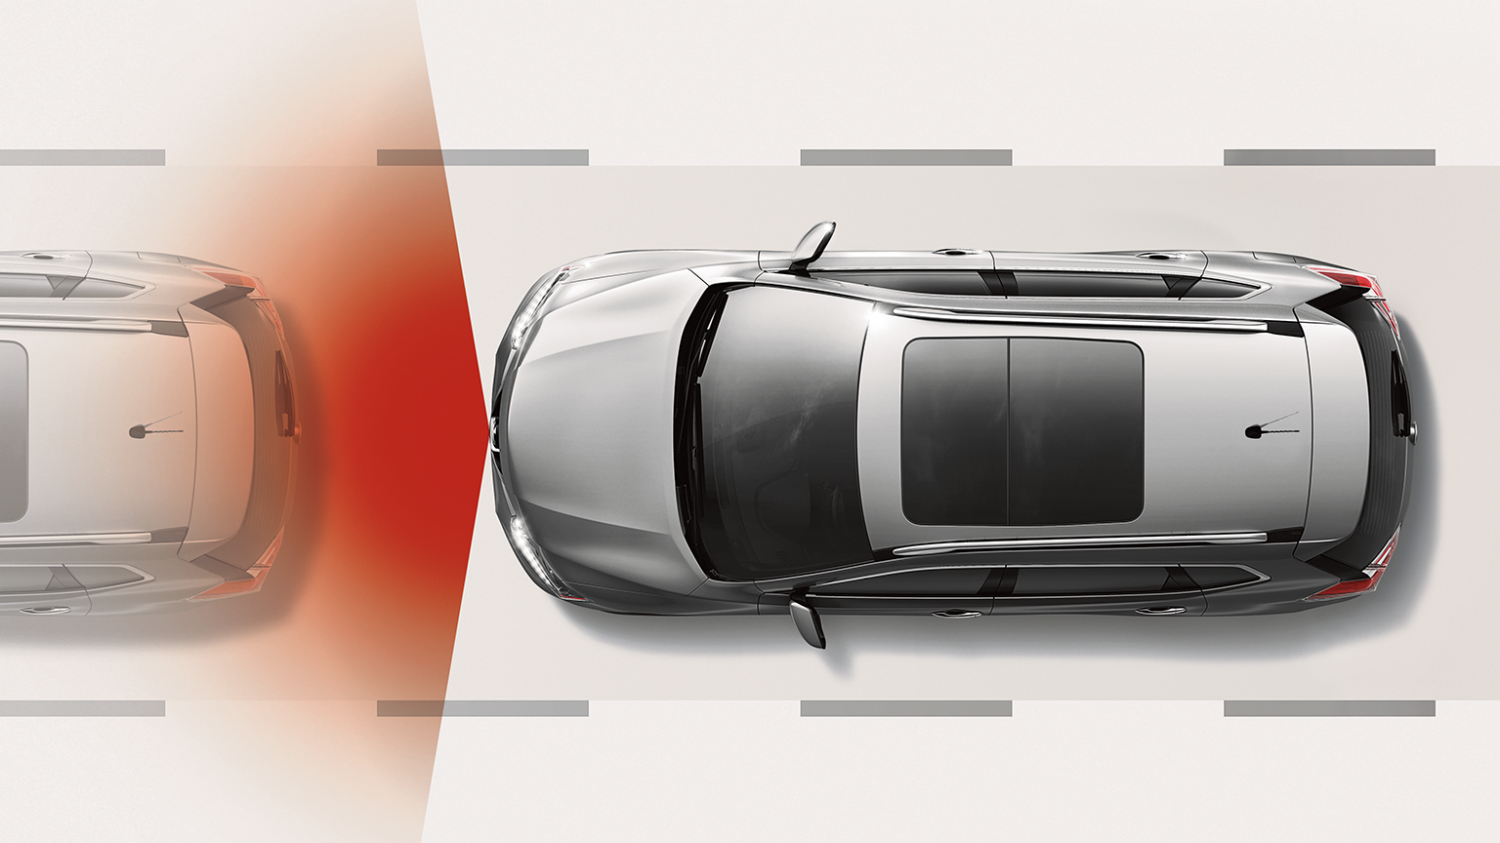 Nissan X-Trail | Safety shield technology